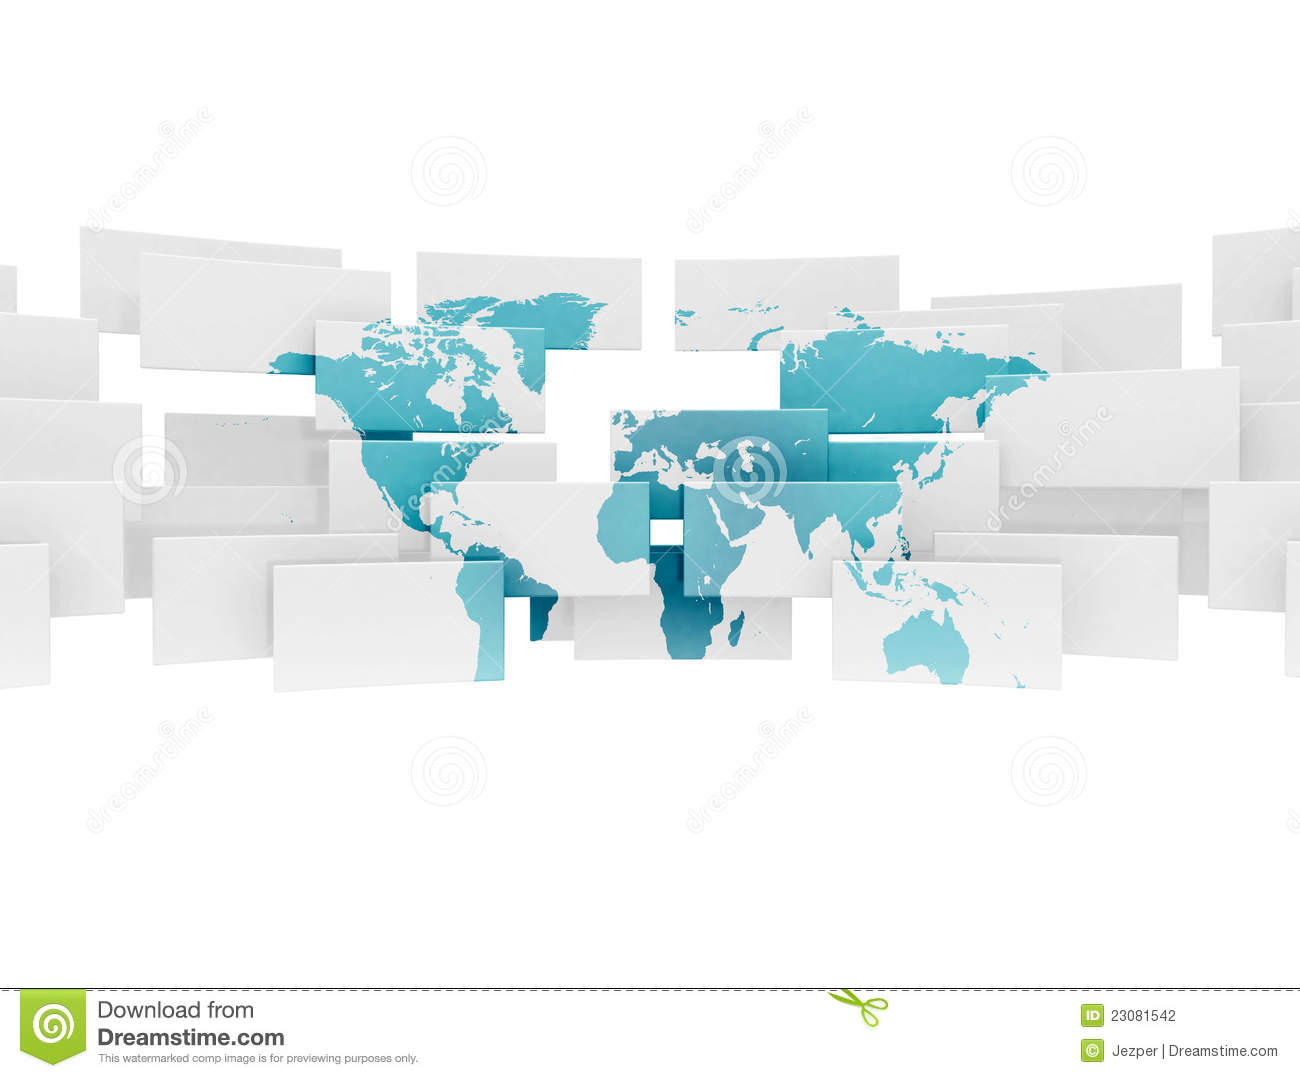 Abstract world map illustration stock illustration illustration abstract world map illustration gumiabroncs Gallery